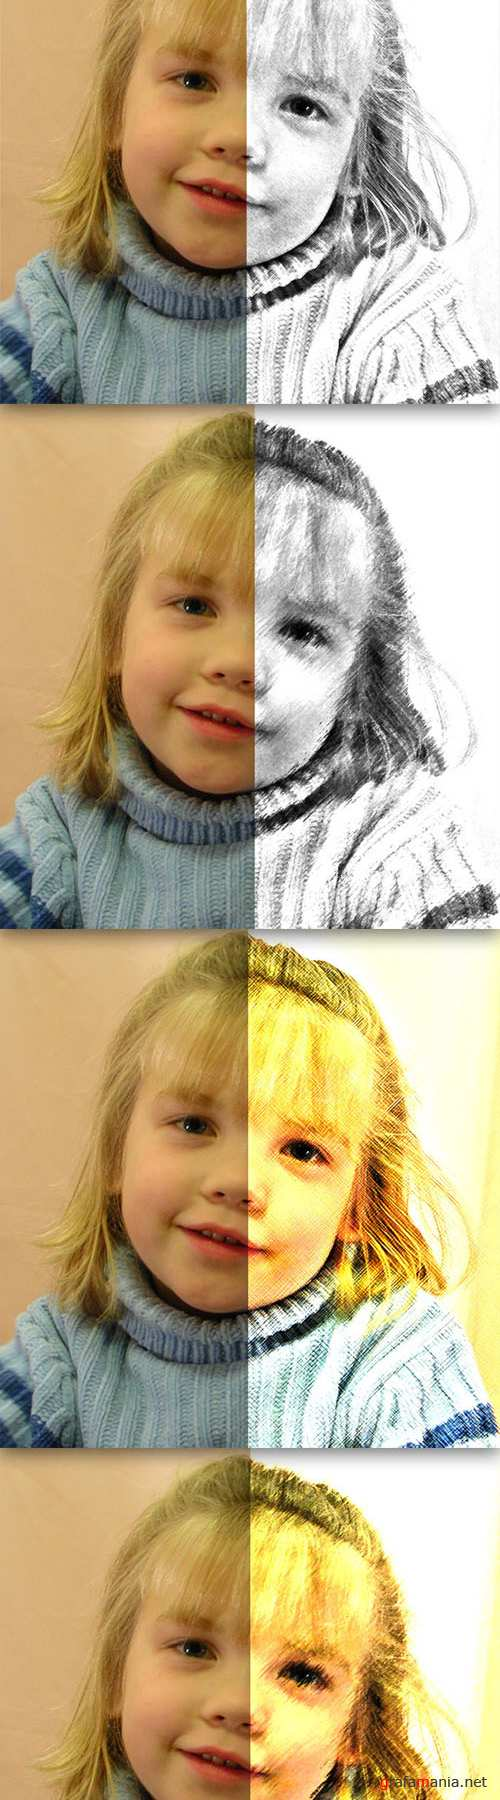 Photo Drawing Photoshop Actions